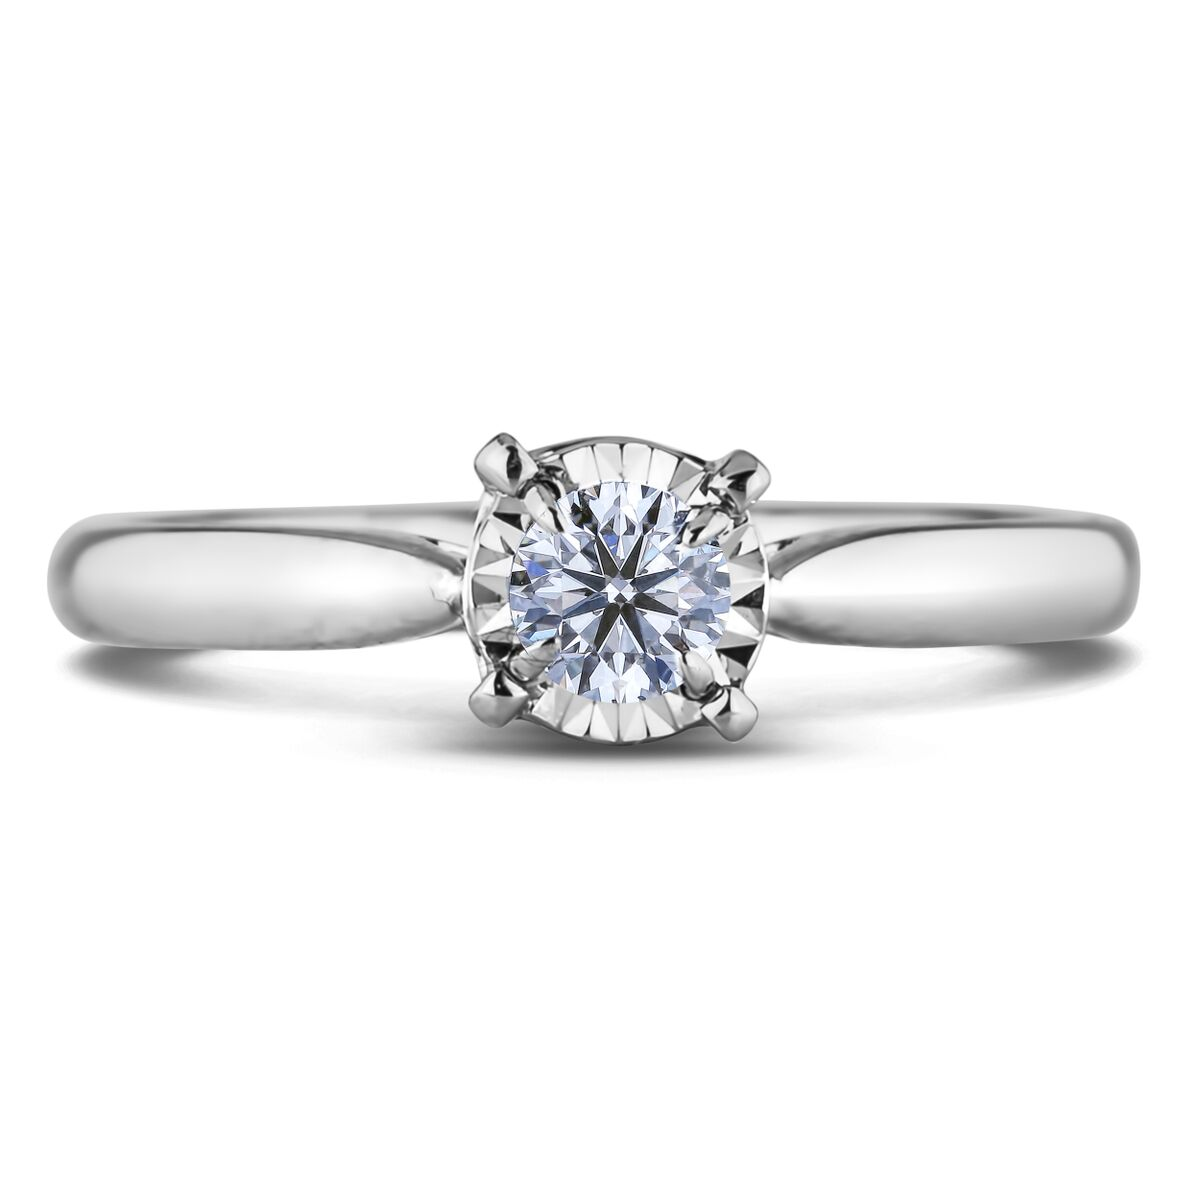 Diamond Solitaire Rings FCR2129025 (Rings)